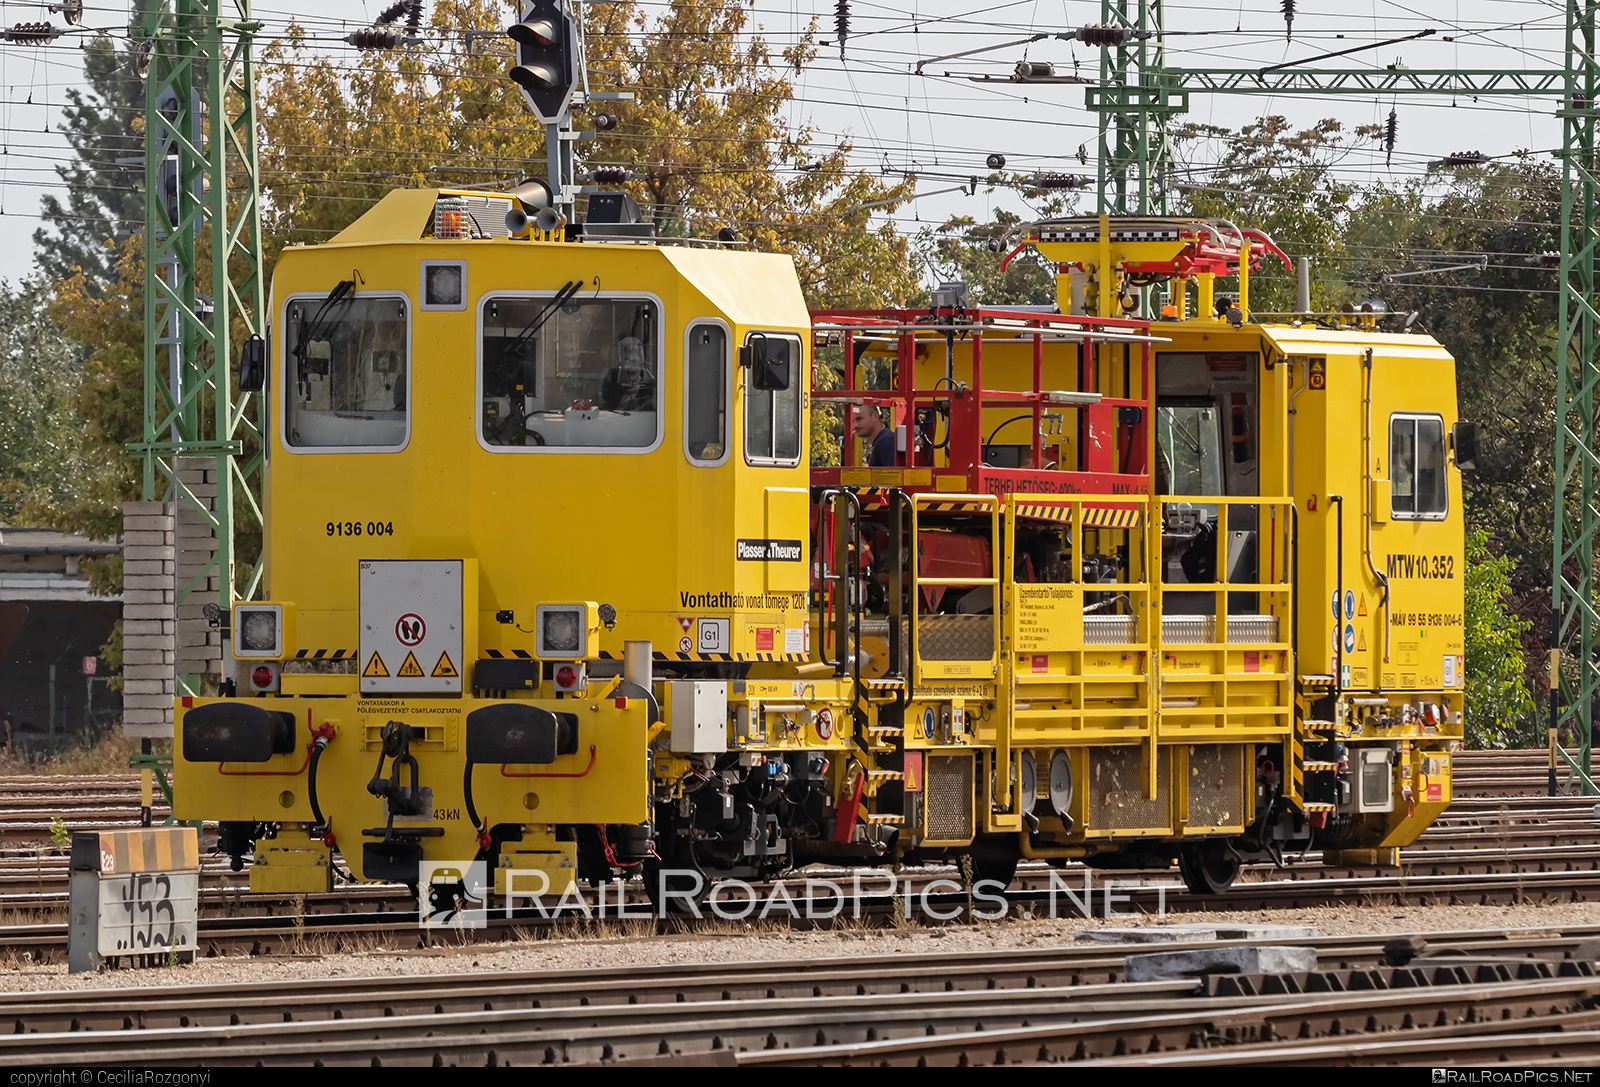 Plasser & Theurer MTW 10 - 9136 004 operated by Magyar Államvasutak ZRt. #magyarallamvasutak #magyarallamvasutakzrt #mav #mtw10 #plasserandtheurer #plasserandtheurermtw10 #plassertheurer #plassertheurermtw10